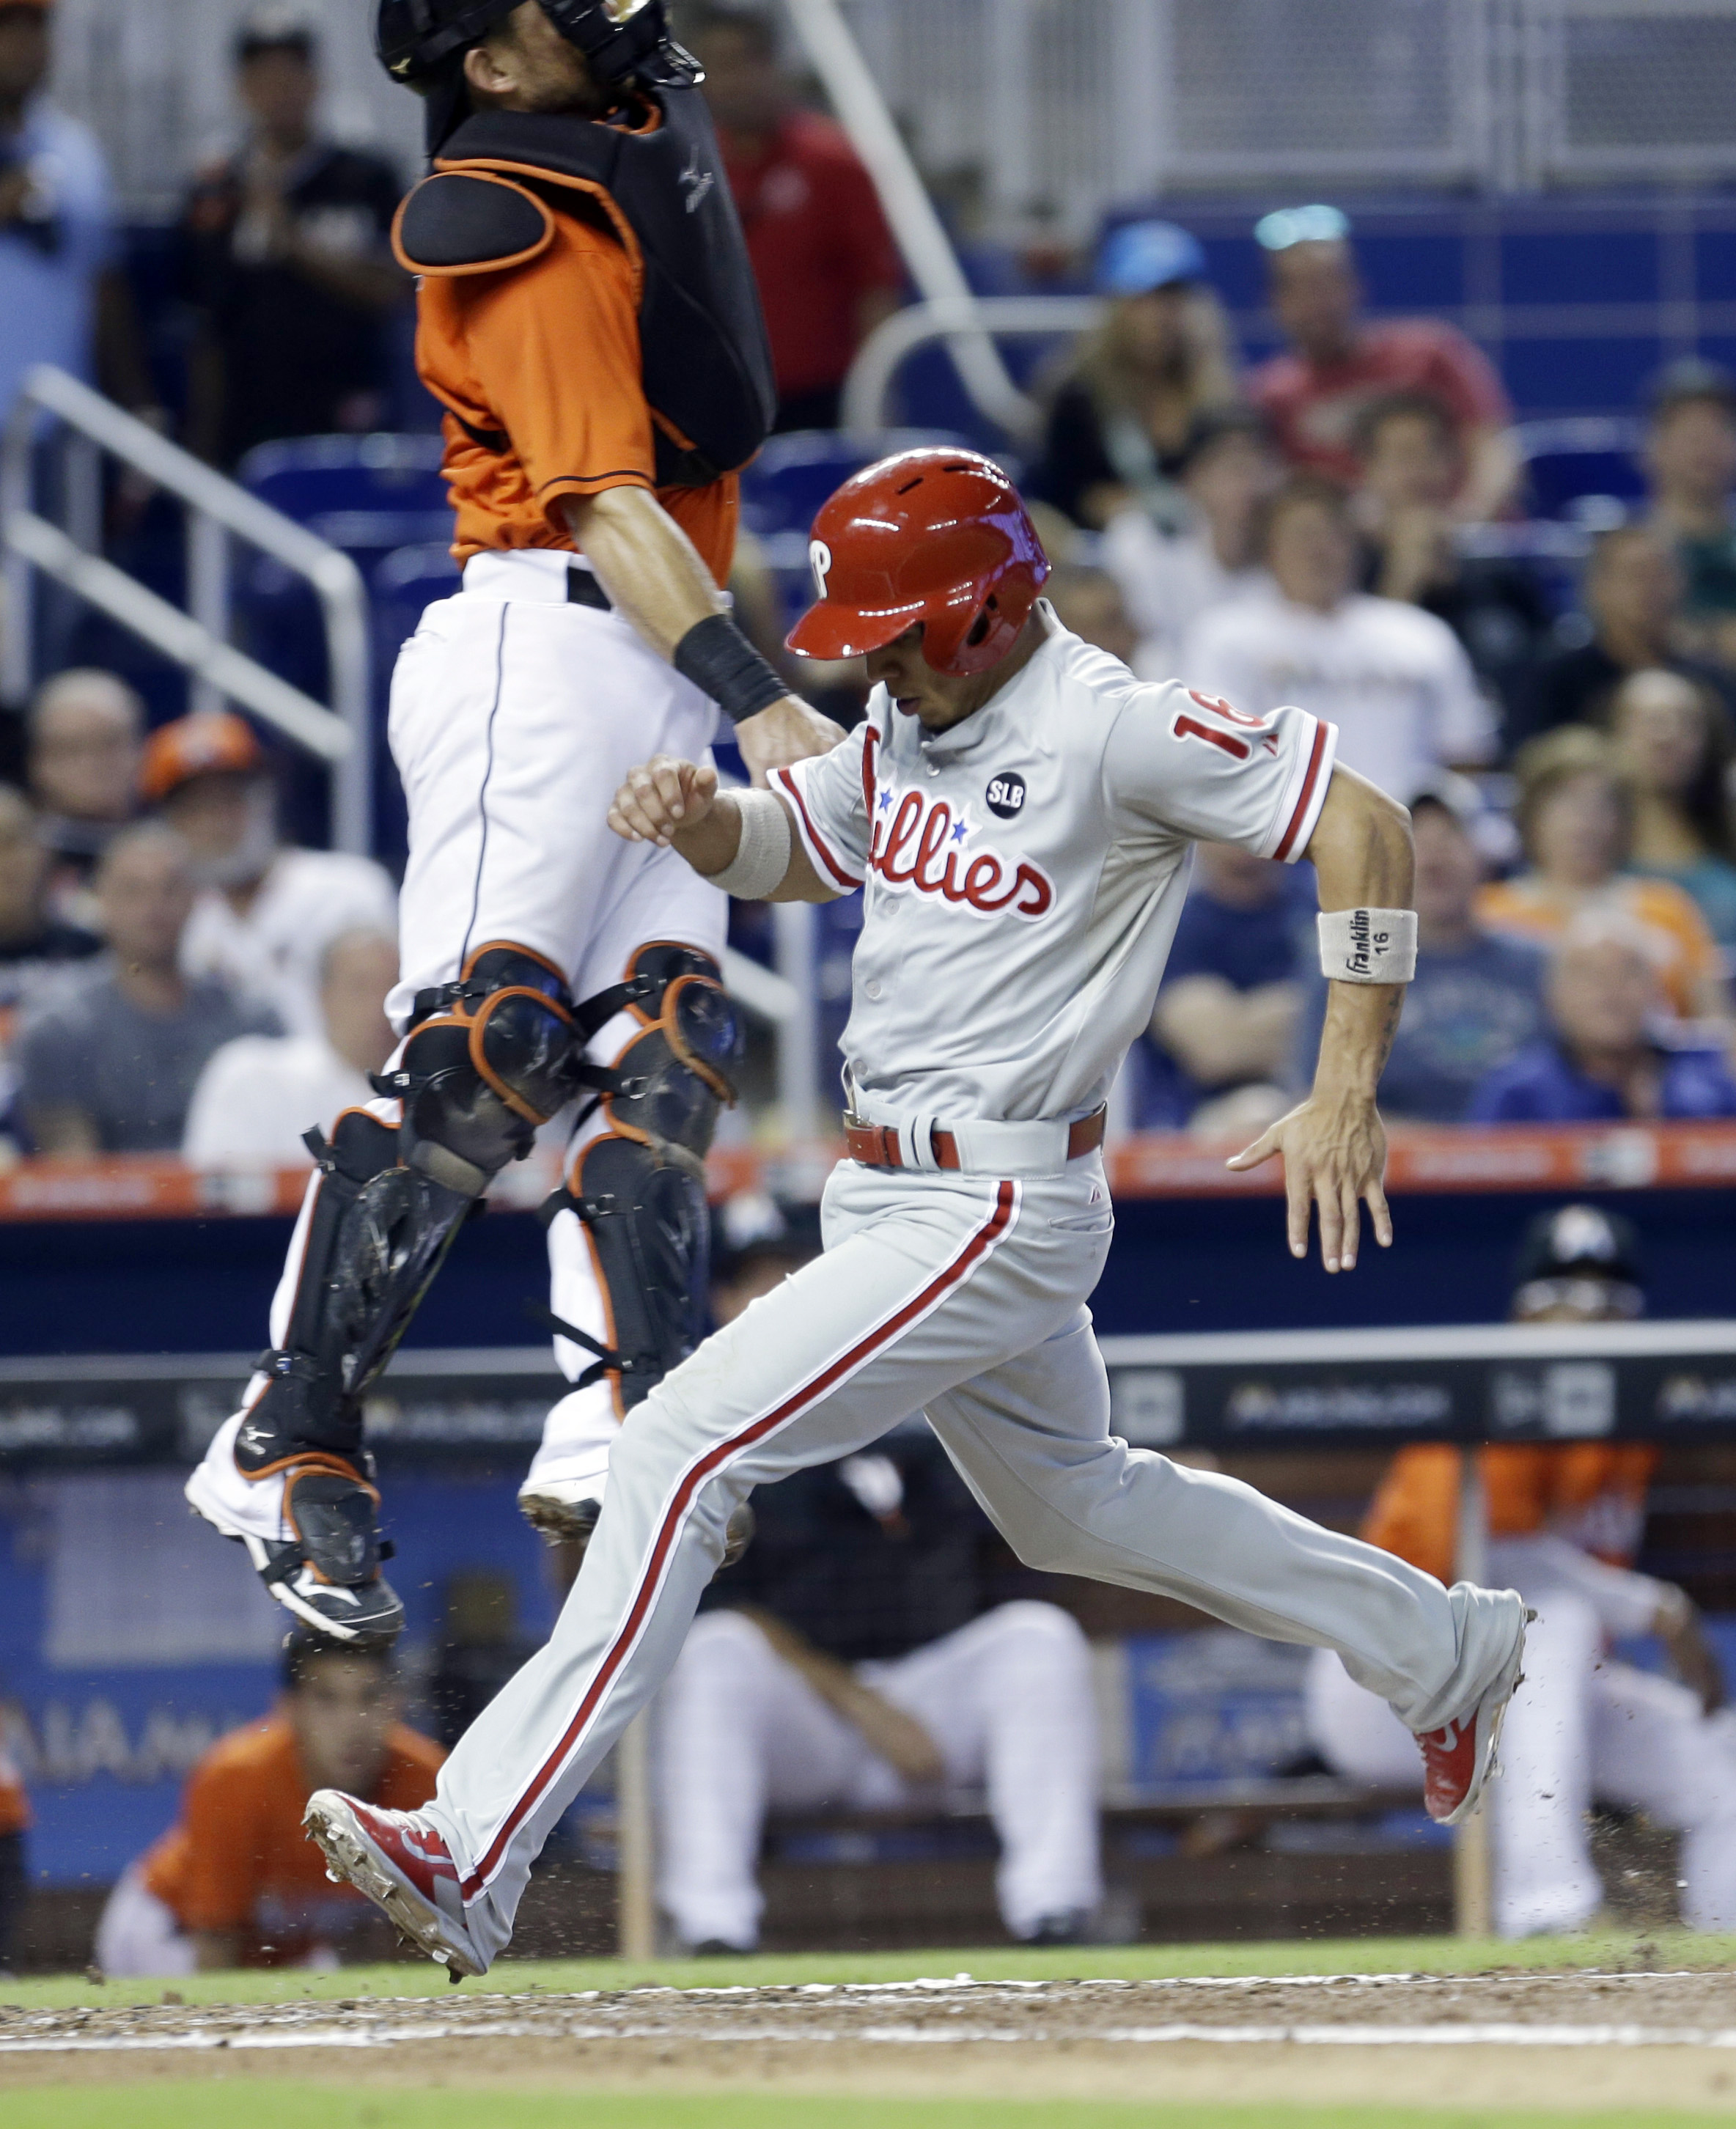 Philadelphia Phillies' Cesar Hernandez (16) scores on a sacrifice fly by Aaron Altherr as Miami Marlins catcher Jeff Mathis, left, leaps for the ball in the third inning of a baseball game, Sunday, Aug. 23, 2015, in Miami. (AP Photo/Alan Diaz)